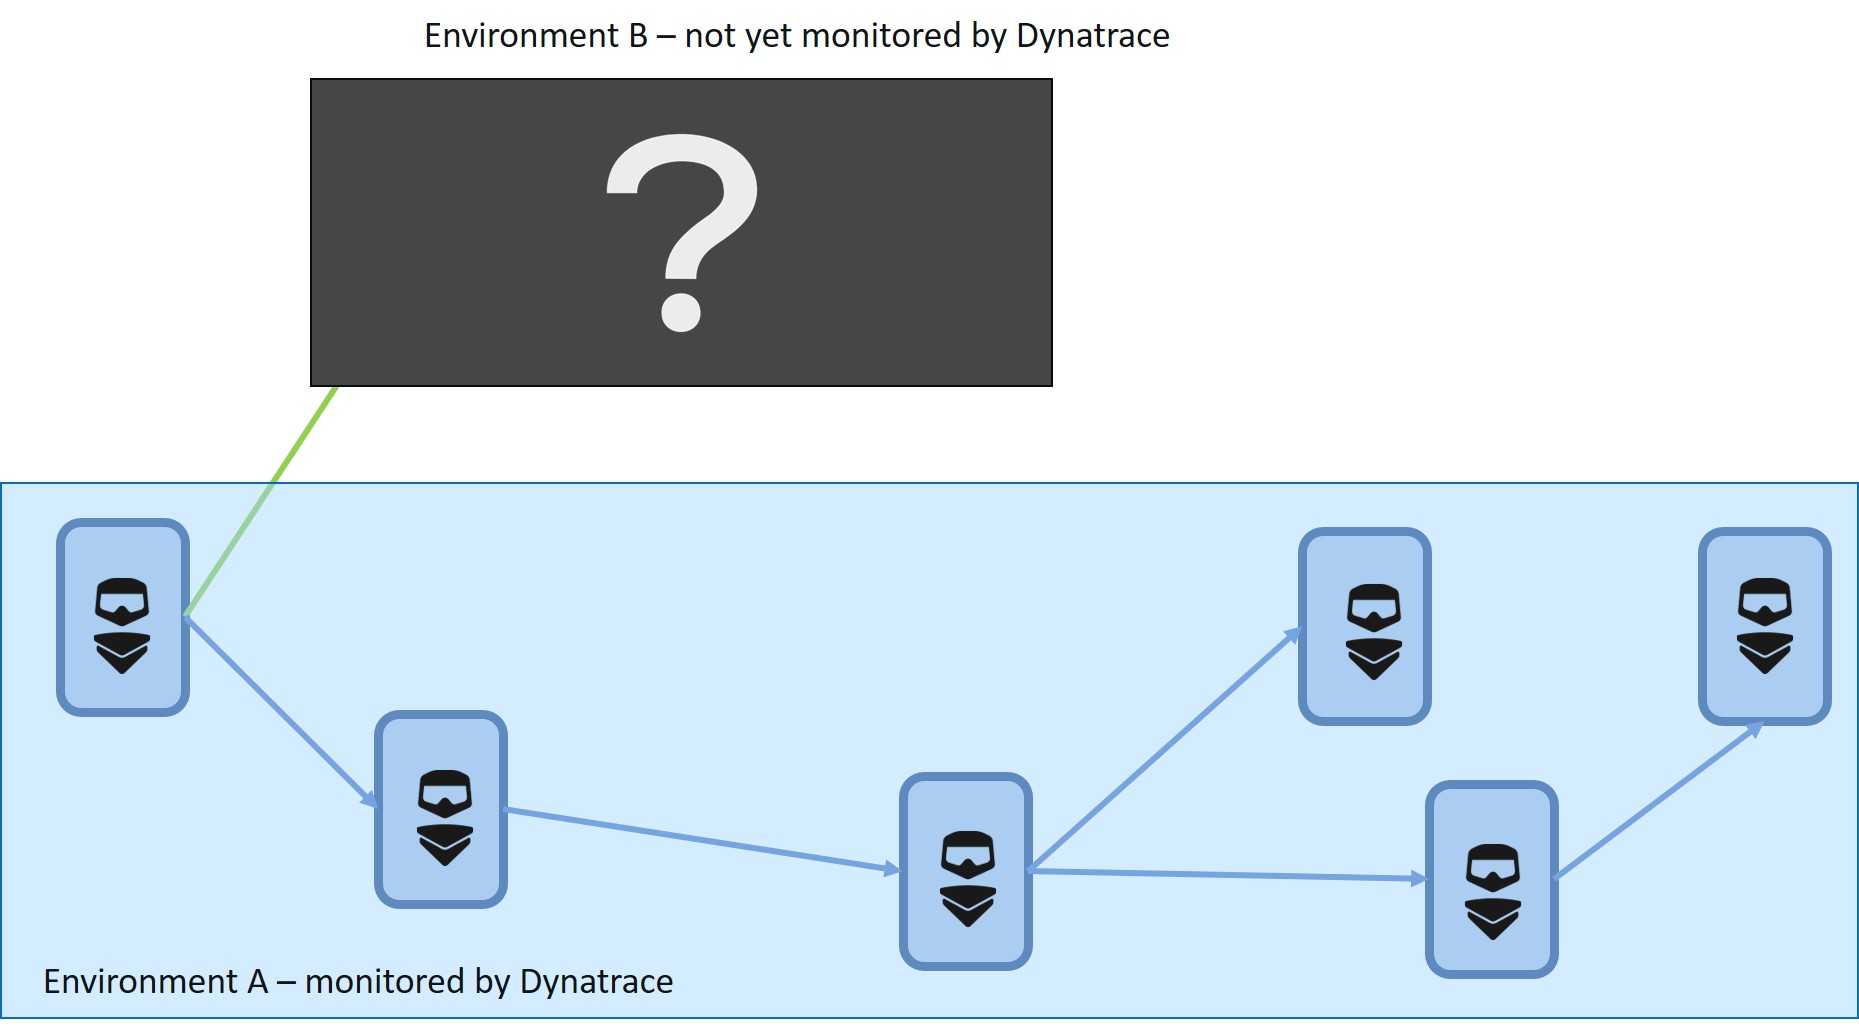 Transactions stopped at the environment not monitored by Dynatrace